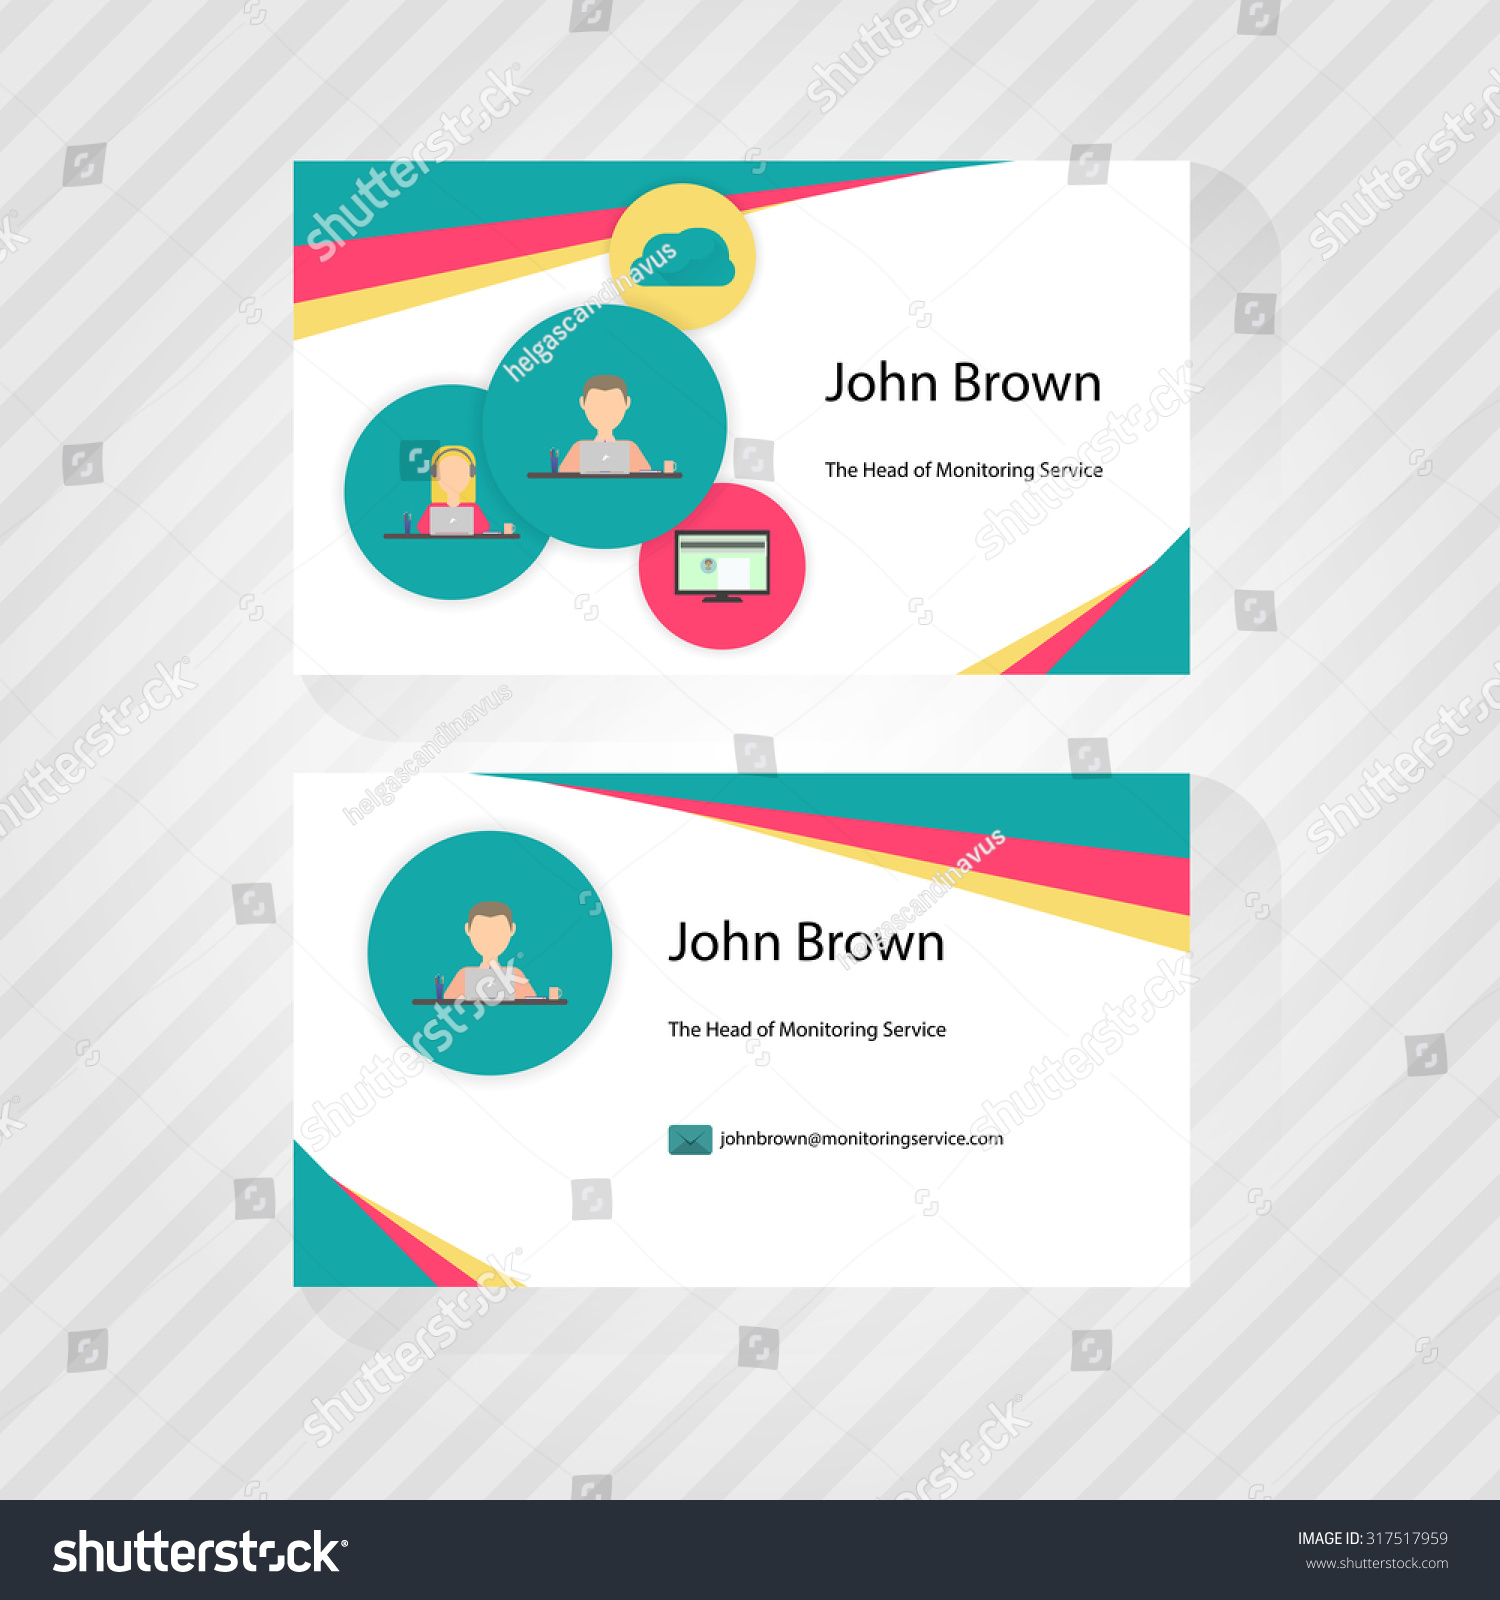 Business Card Trendy Flat Design Icons Stock Vector HD (Royalty Free ...